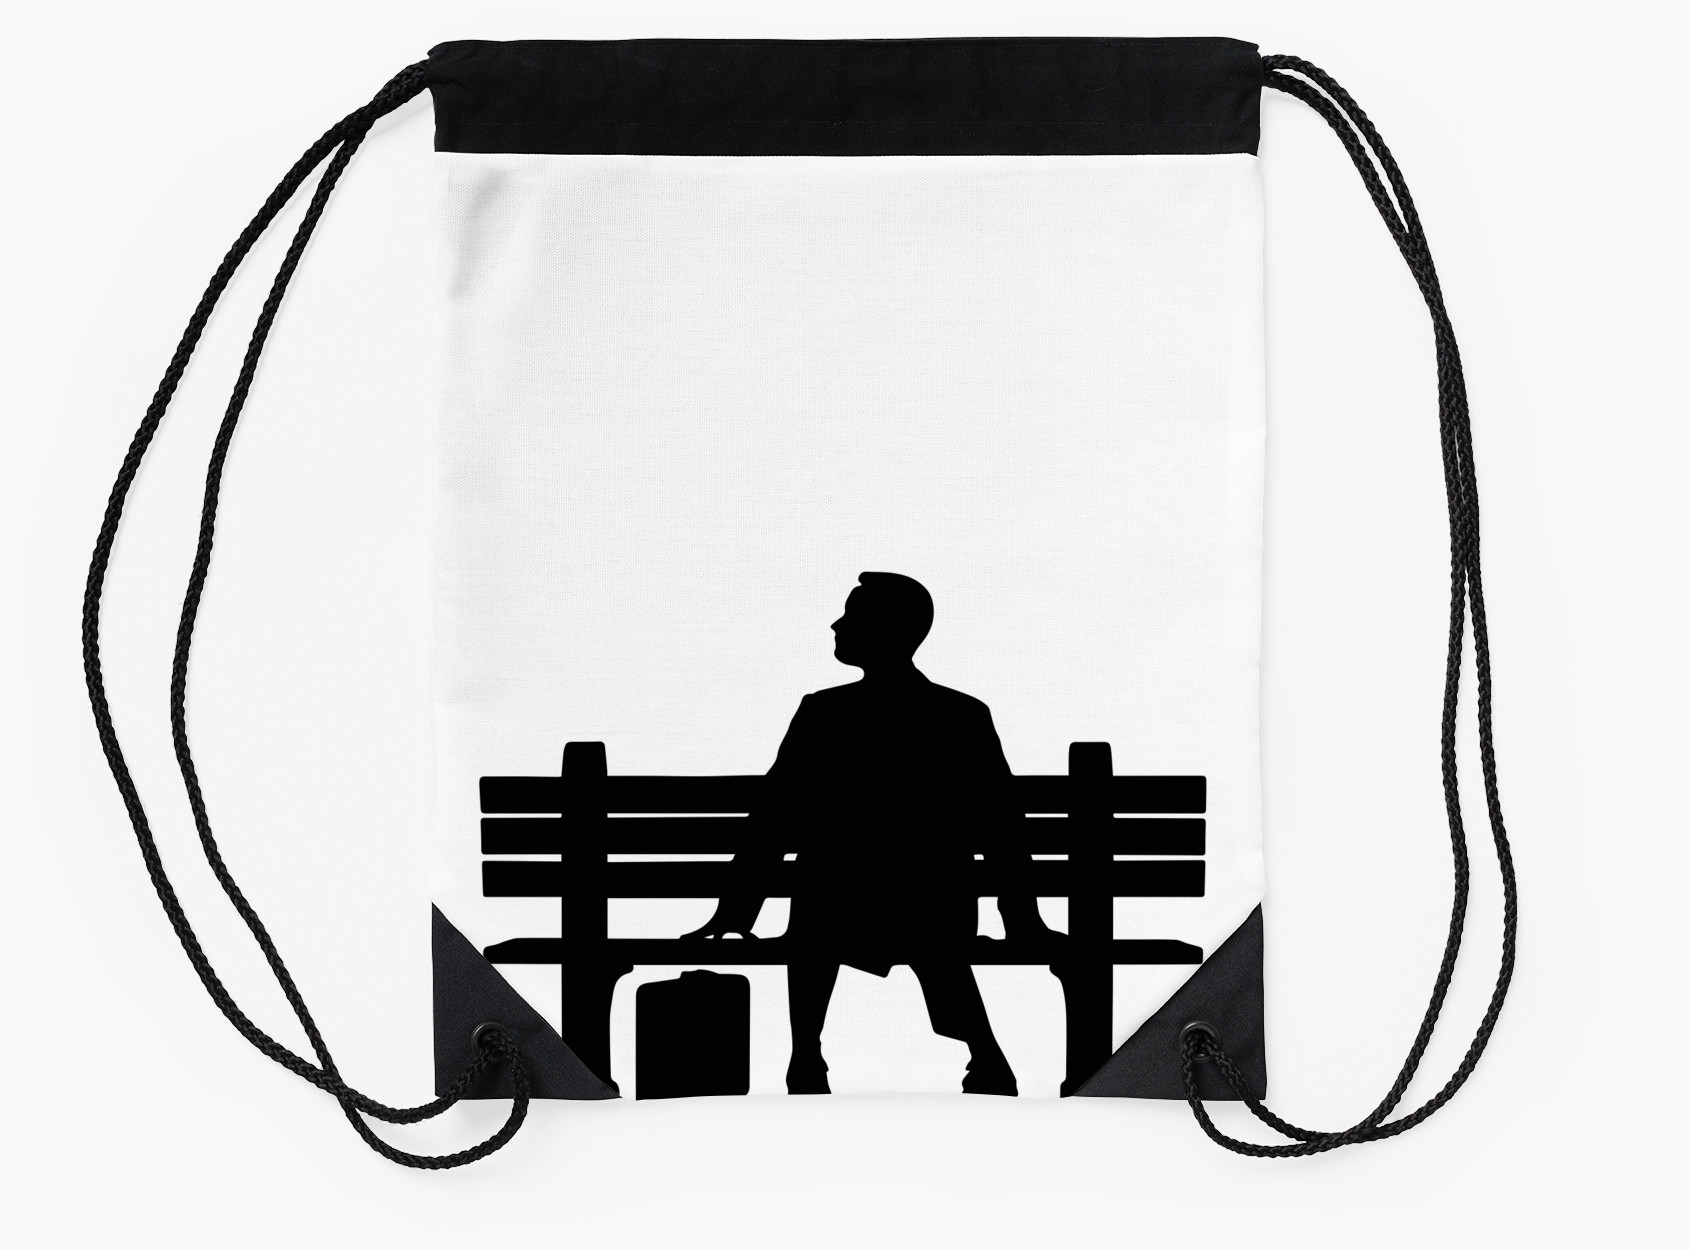 1690x1250 Forrest Gump Silhouette Sitting On Bench Drawstring Bags By